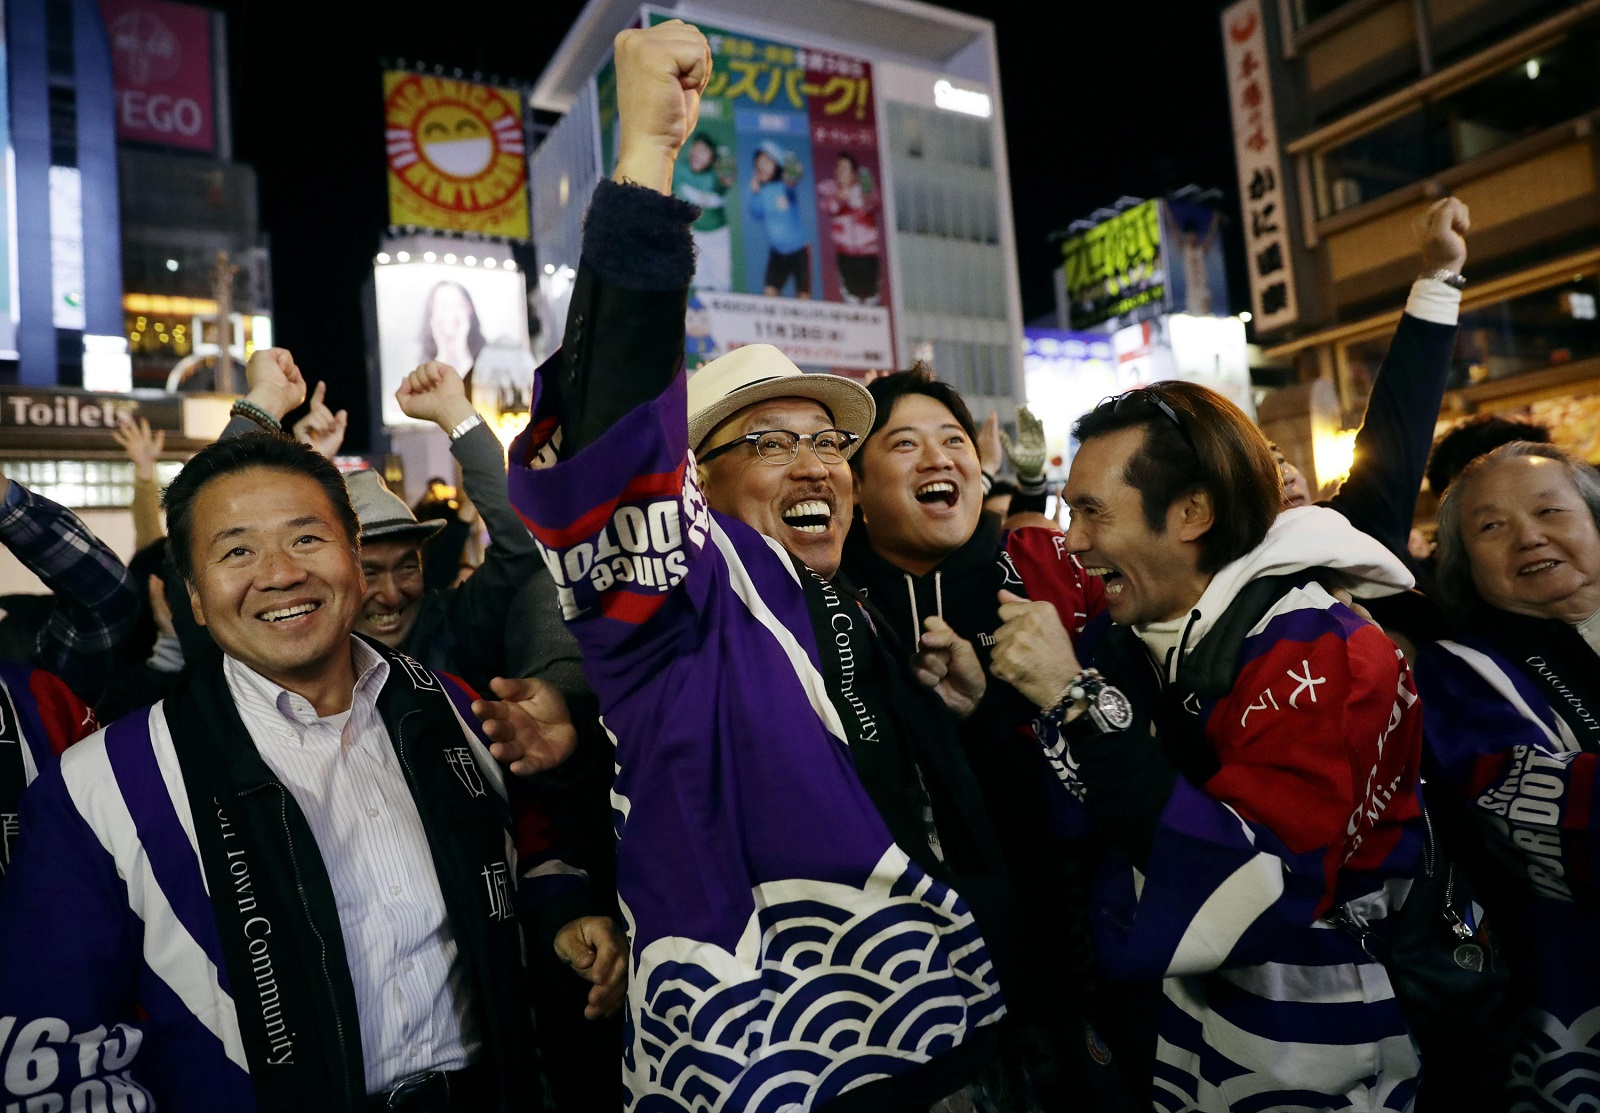 People in Osaka, Japan celebrate after winning the vote at the 164th General Assembly of the Bureau International des Expositions (BIE). Osaka will host the World Expo in 2025, beating out Russia, Azerbaijan for an event. (Kyodo News via AP, File)